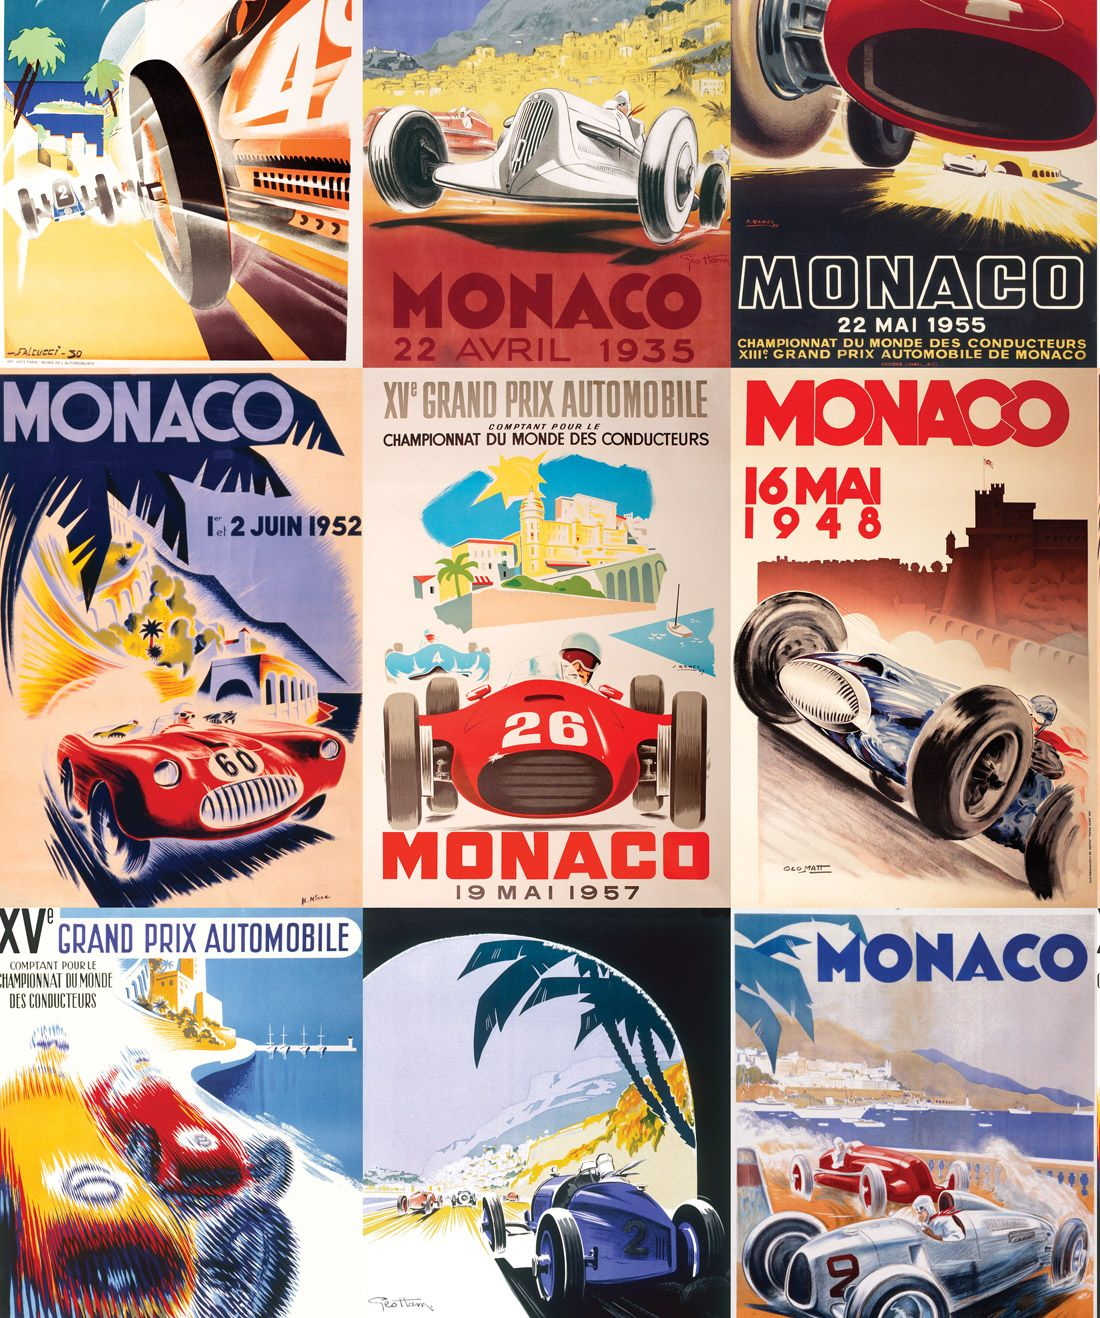 Circuit De Monaco Vintage Race Car Wallpaper Milton King In 2020 Car Wallpapers Vintage Race Car Vintage Racing